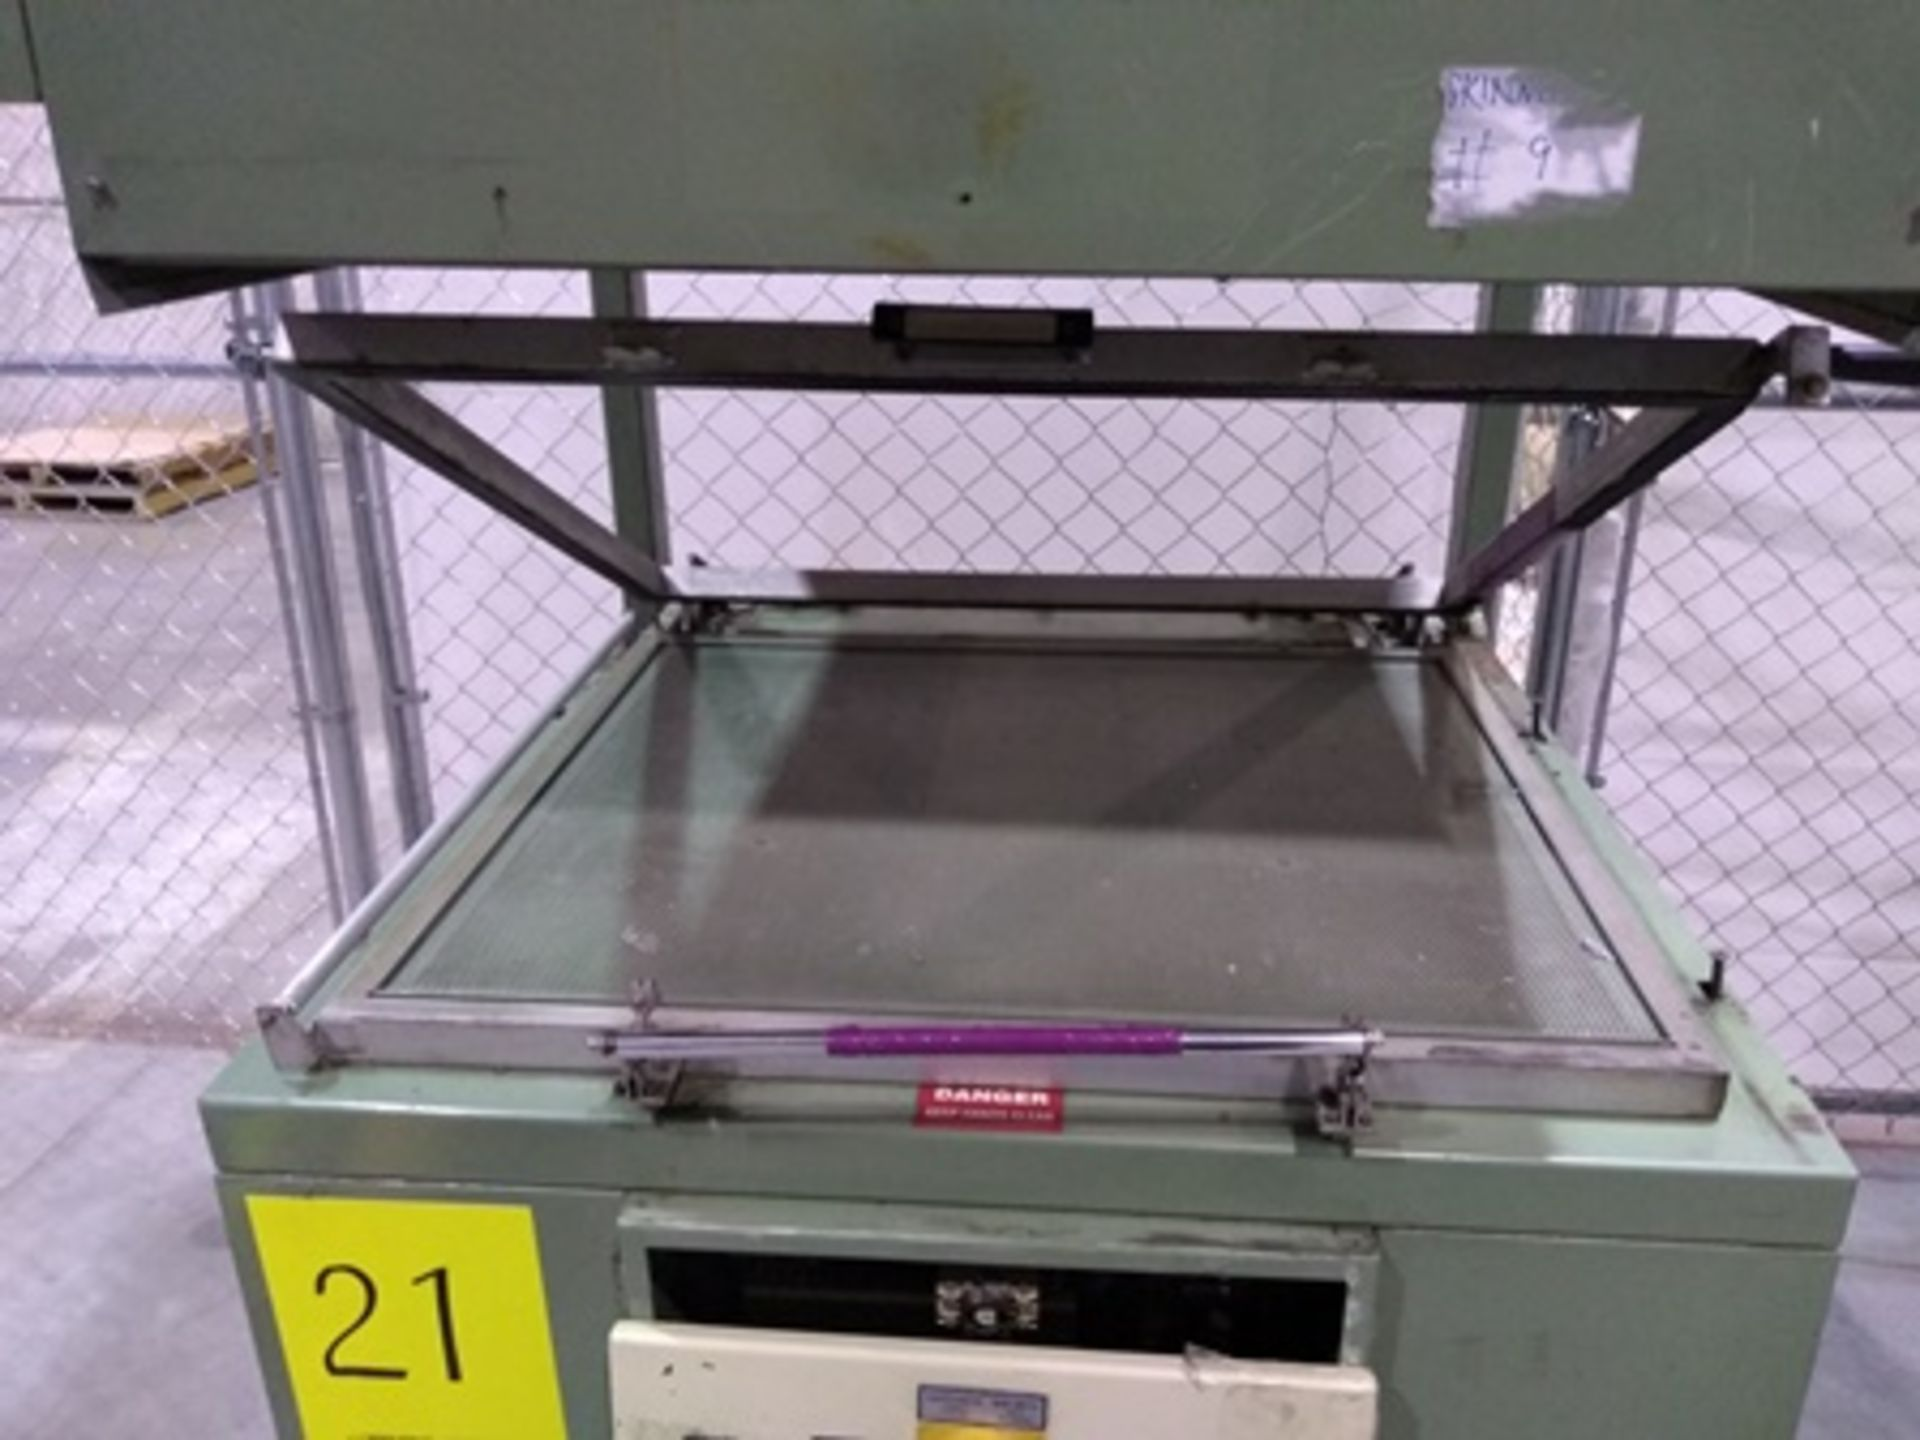 Lot 21 - Visual Thermoforming model CT3036 skin packager, S/N 39320593, 220V, 3PH, 60HZ, 27.5x35 inch…